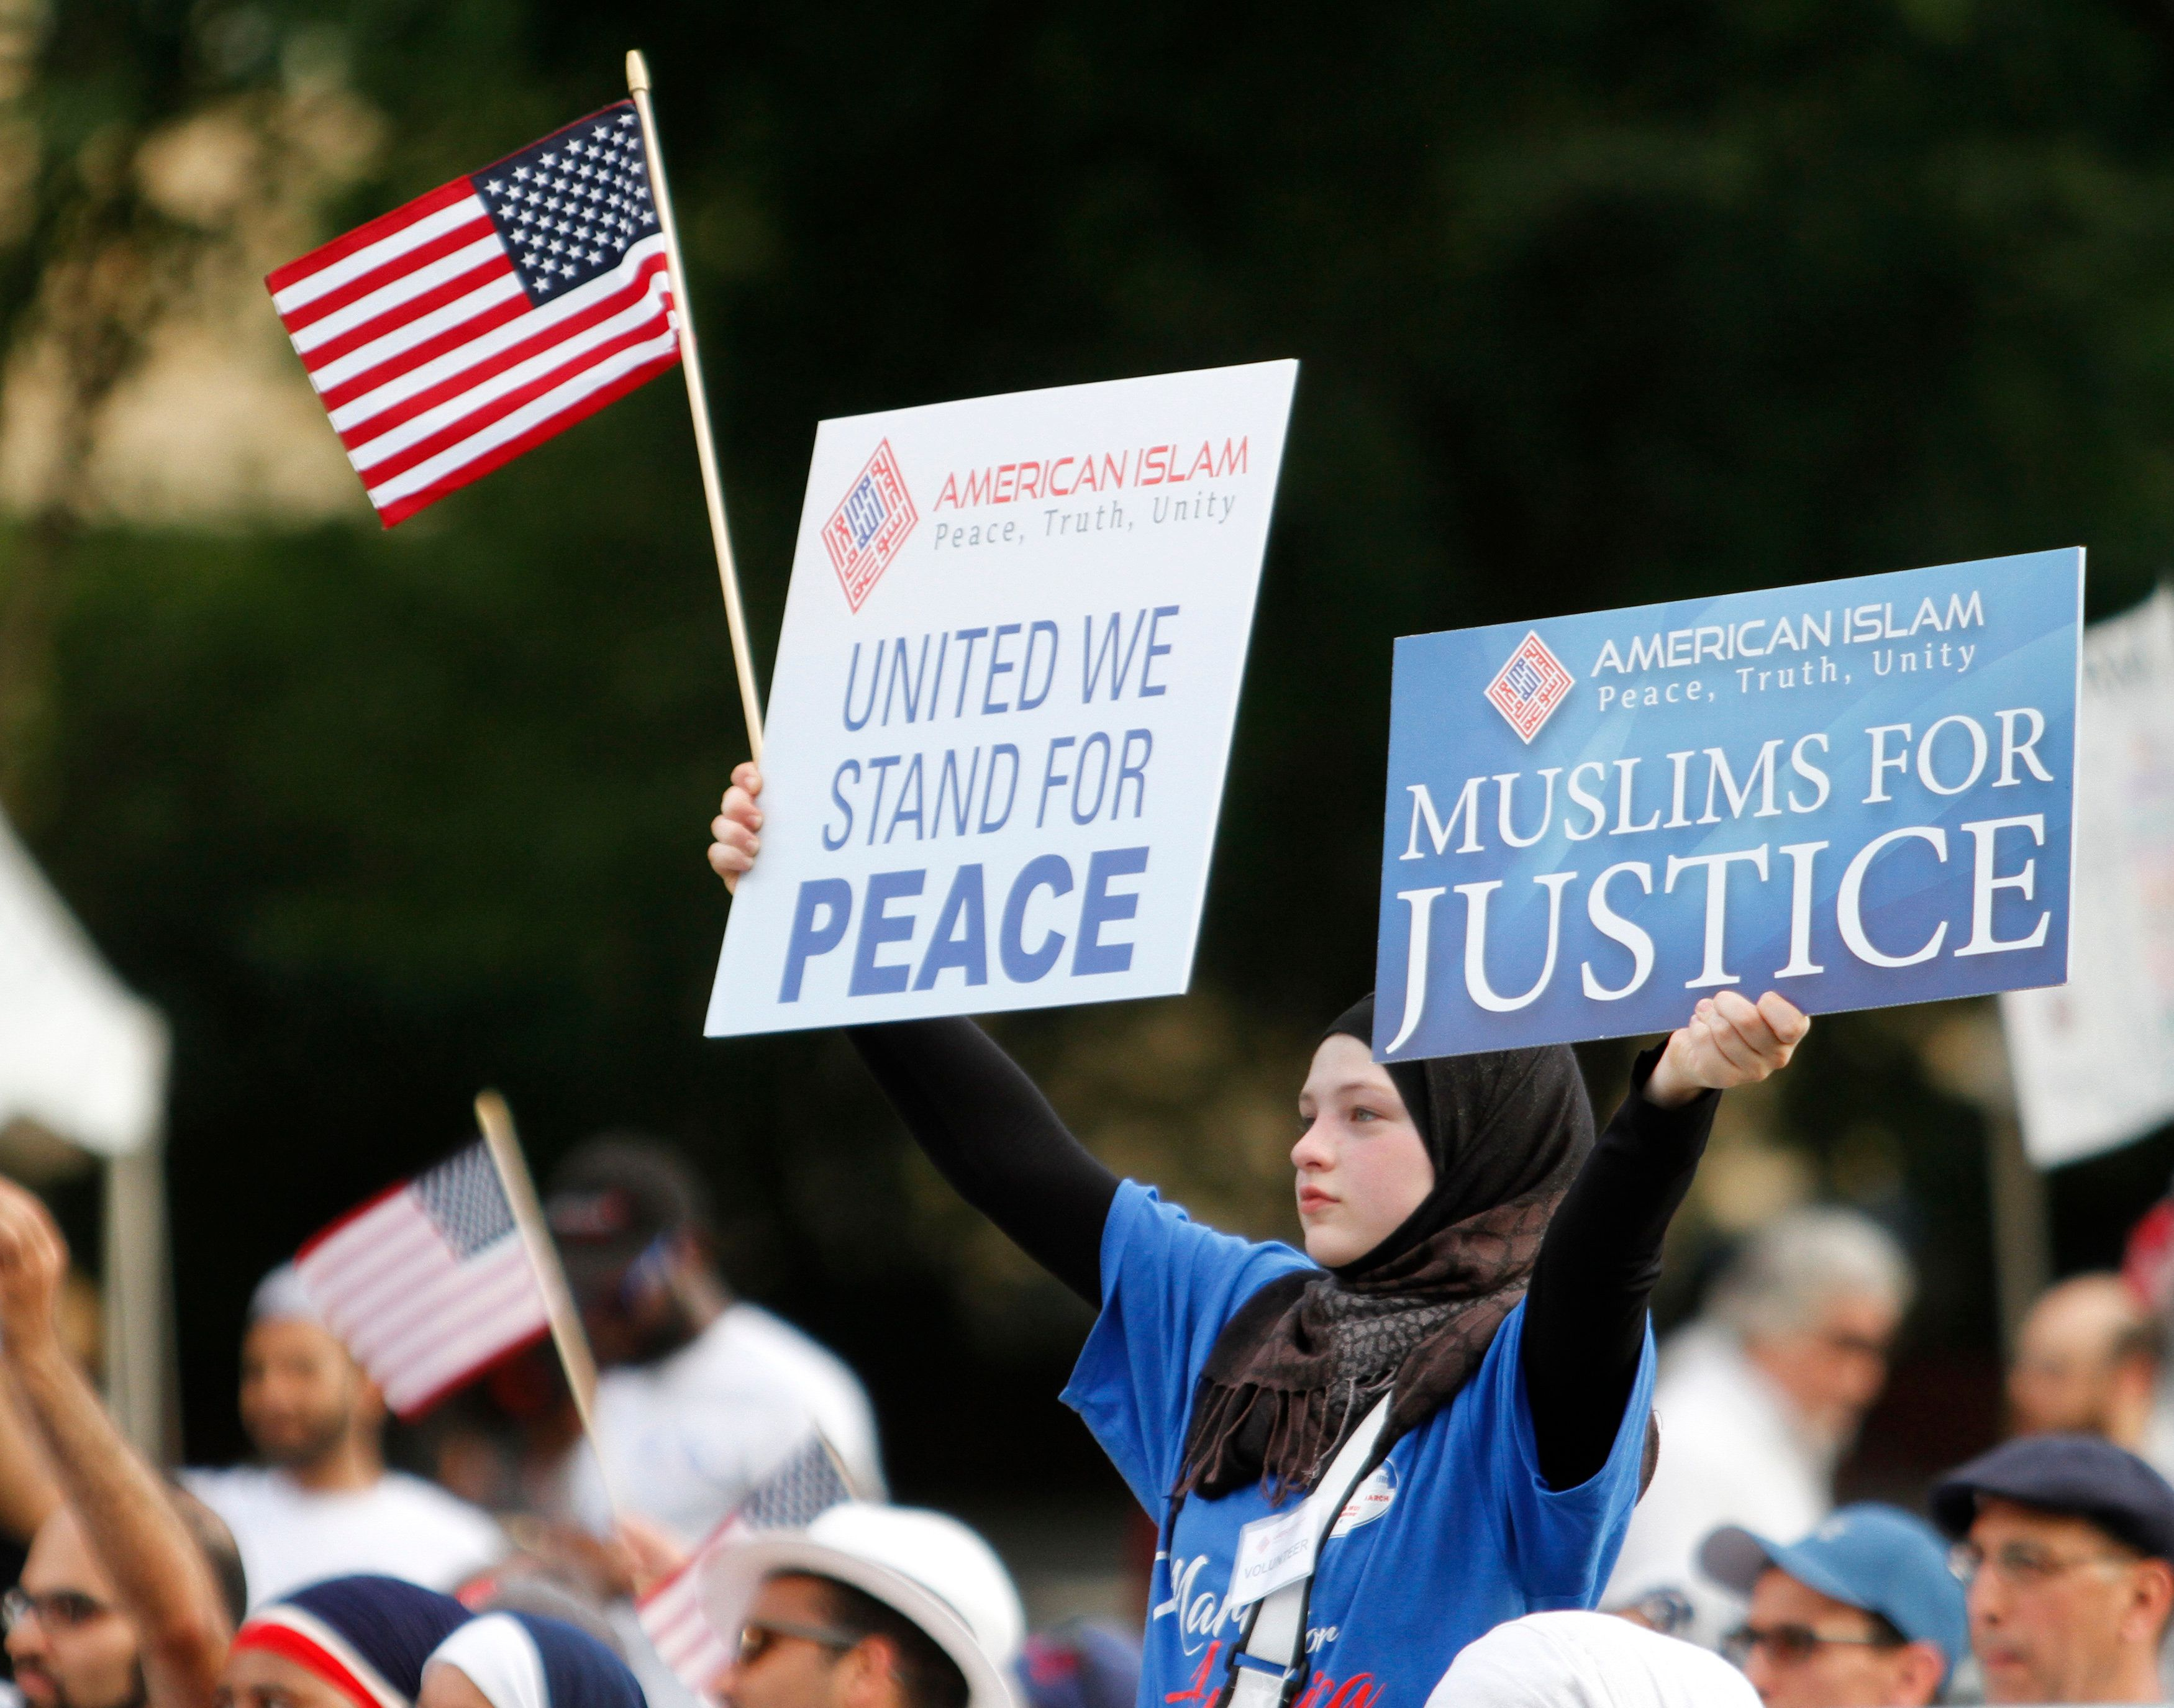 Muslim women across the country have reported being attacked by white Trump supporters after the election.